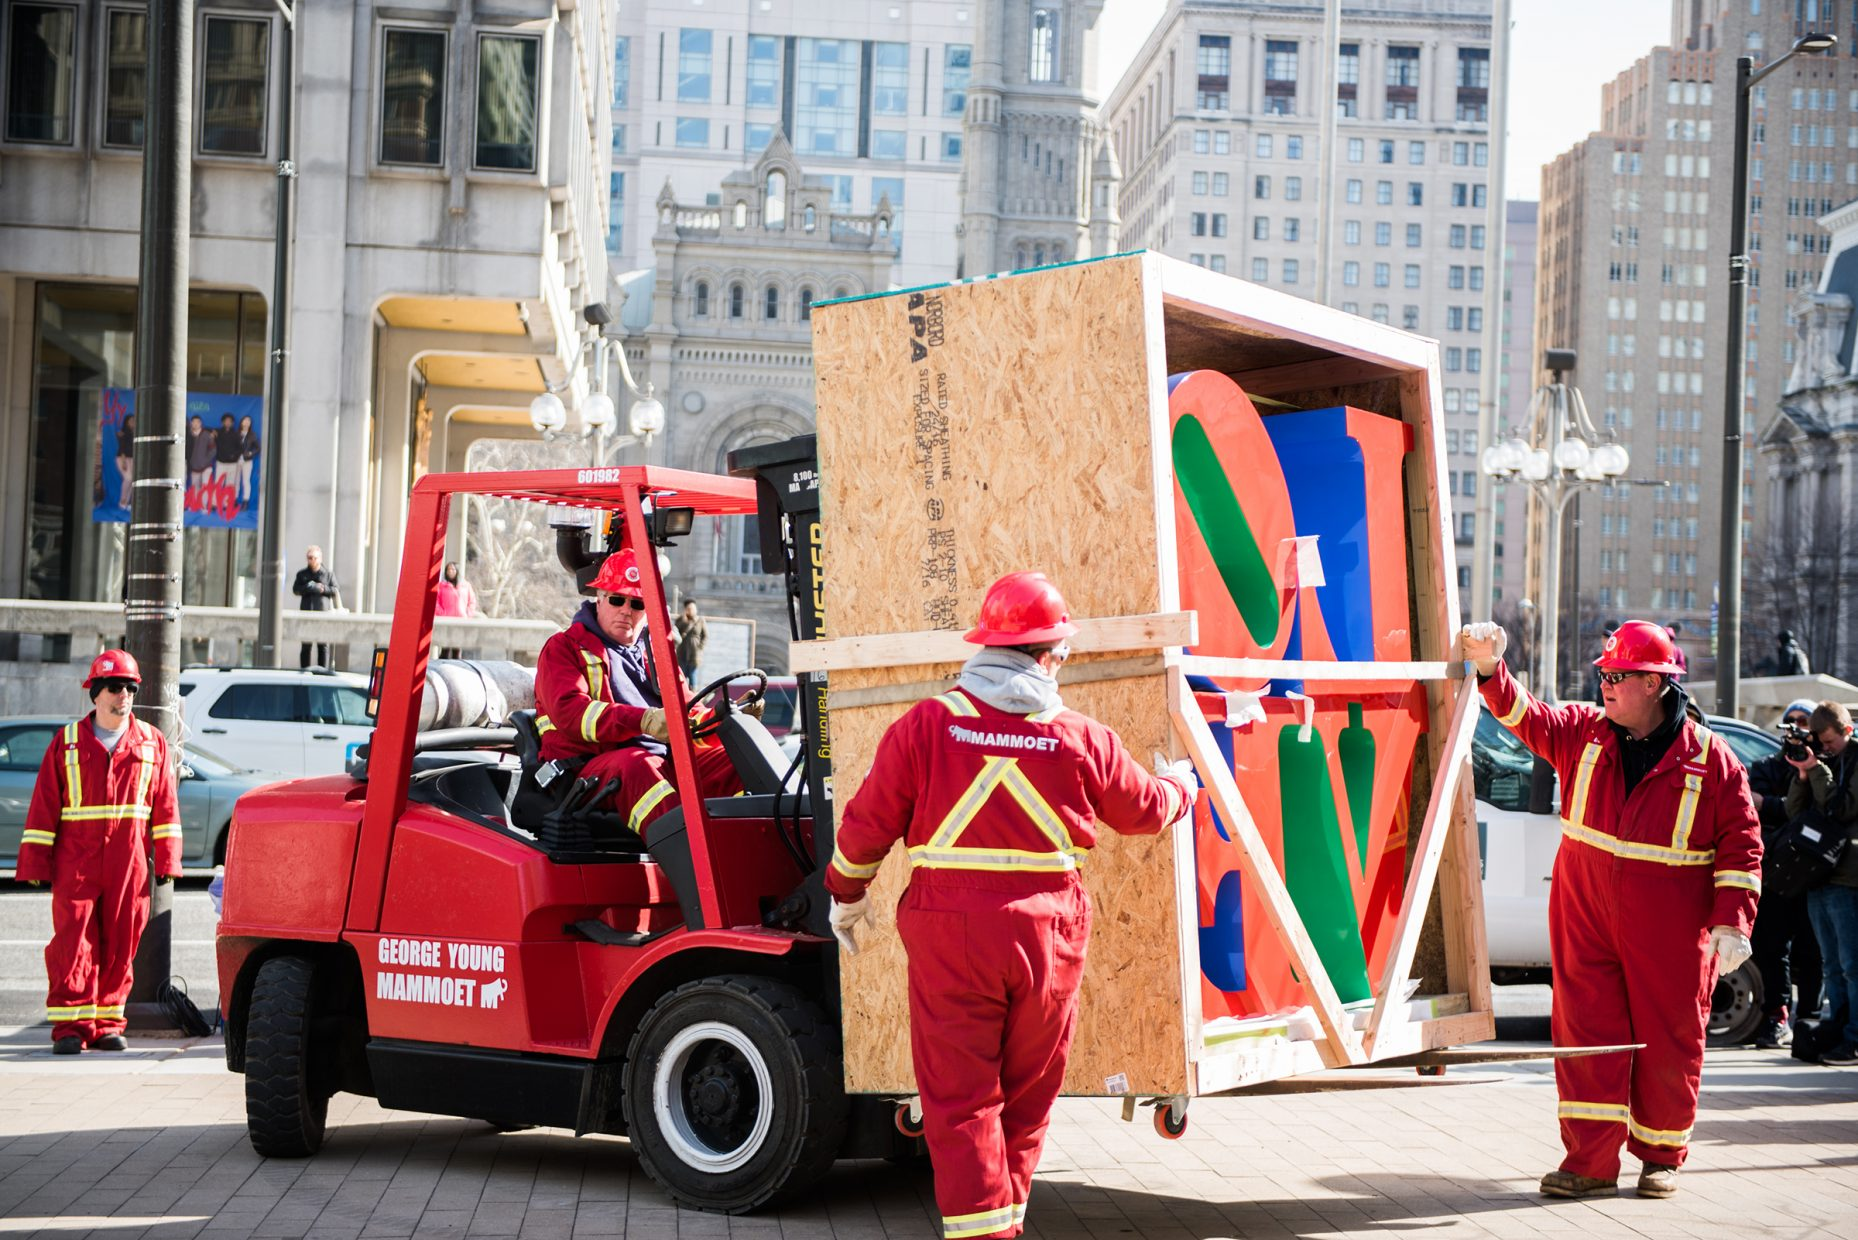 Construction workers use a forklift to transport the LOVE statue in Philadelphia.